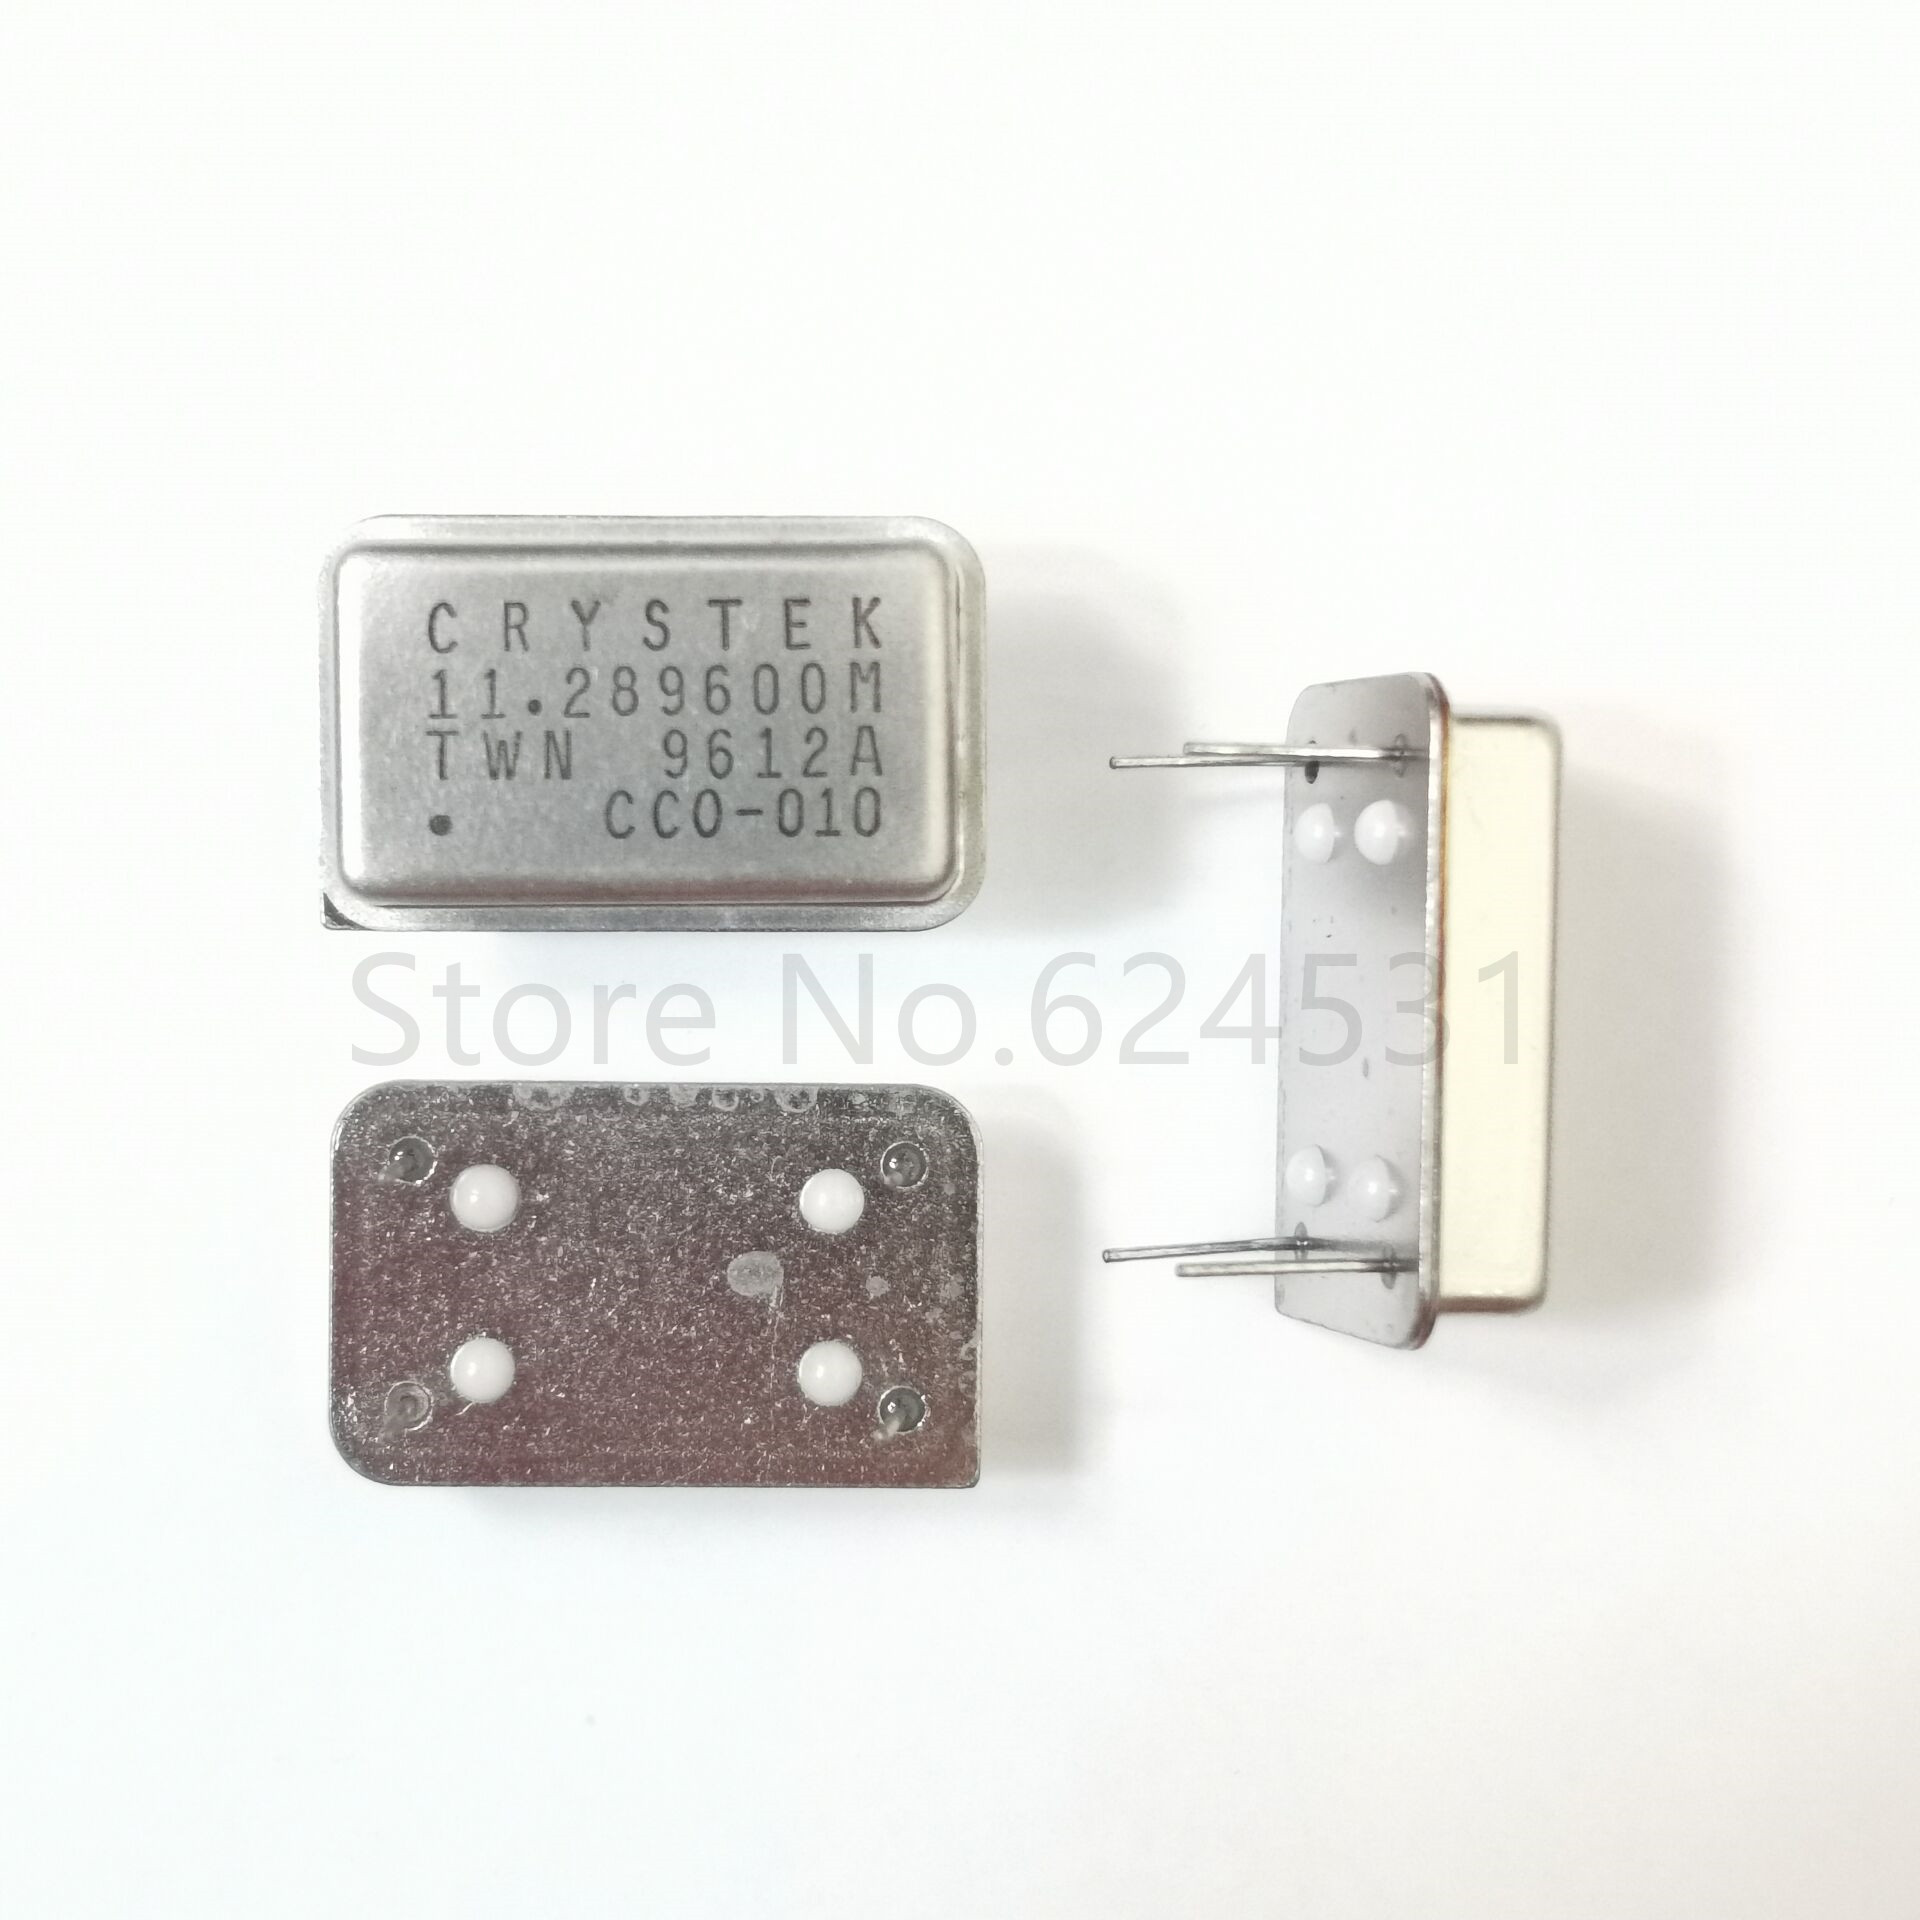 5pcs In-line Active Crystal OSC DIP-4 Rectangular Clock Vibration Full Size 11.2896MHZ